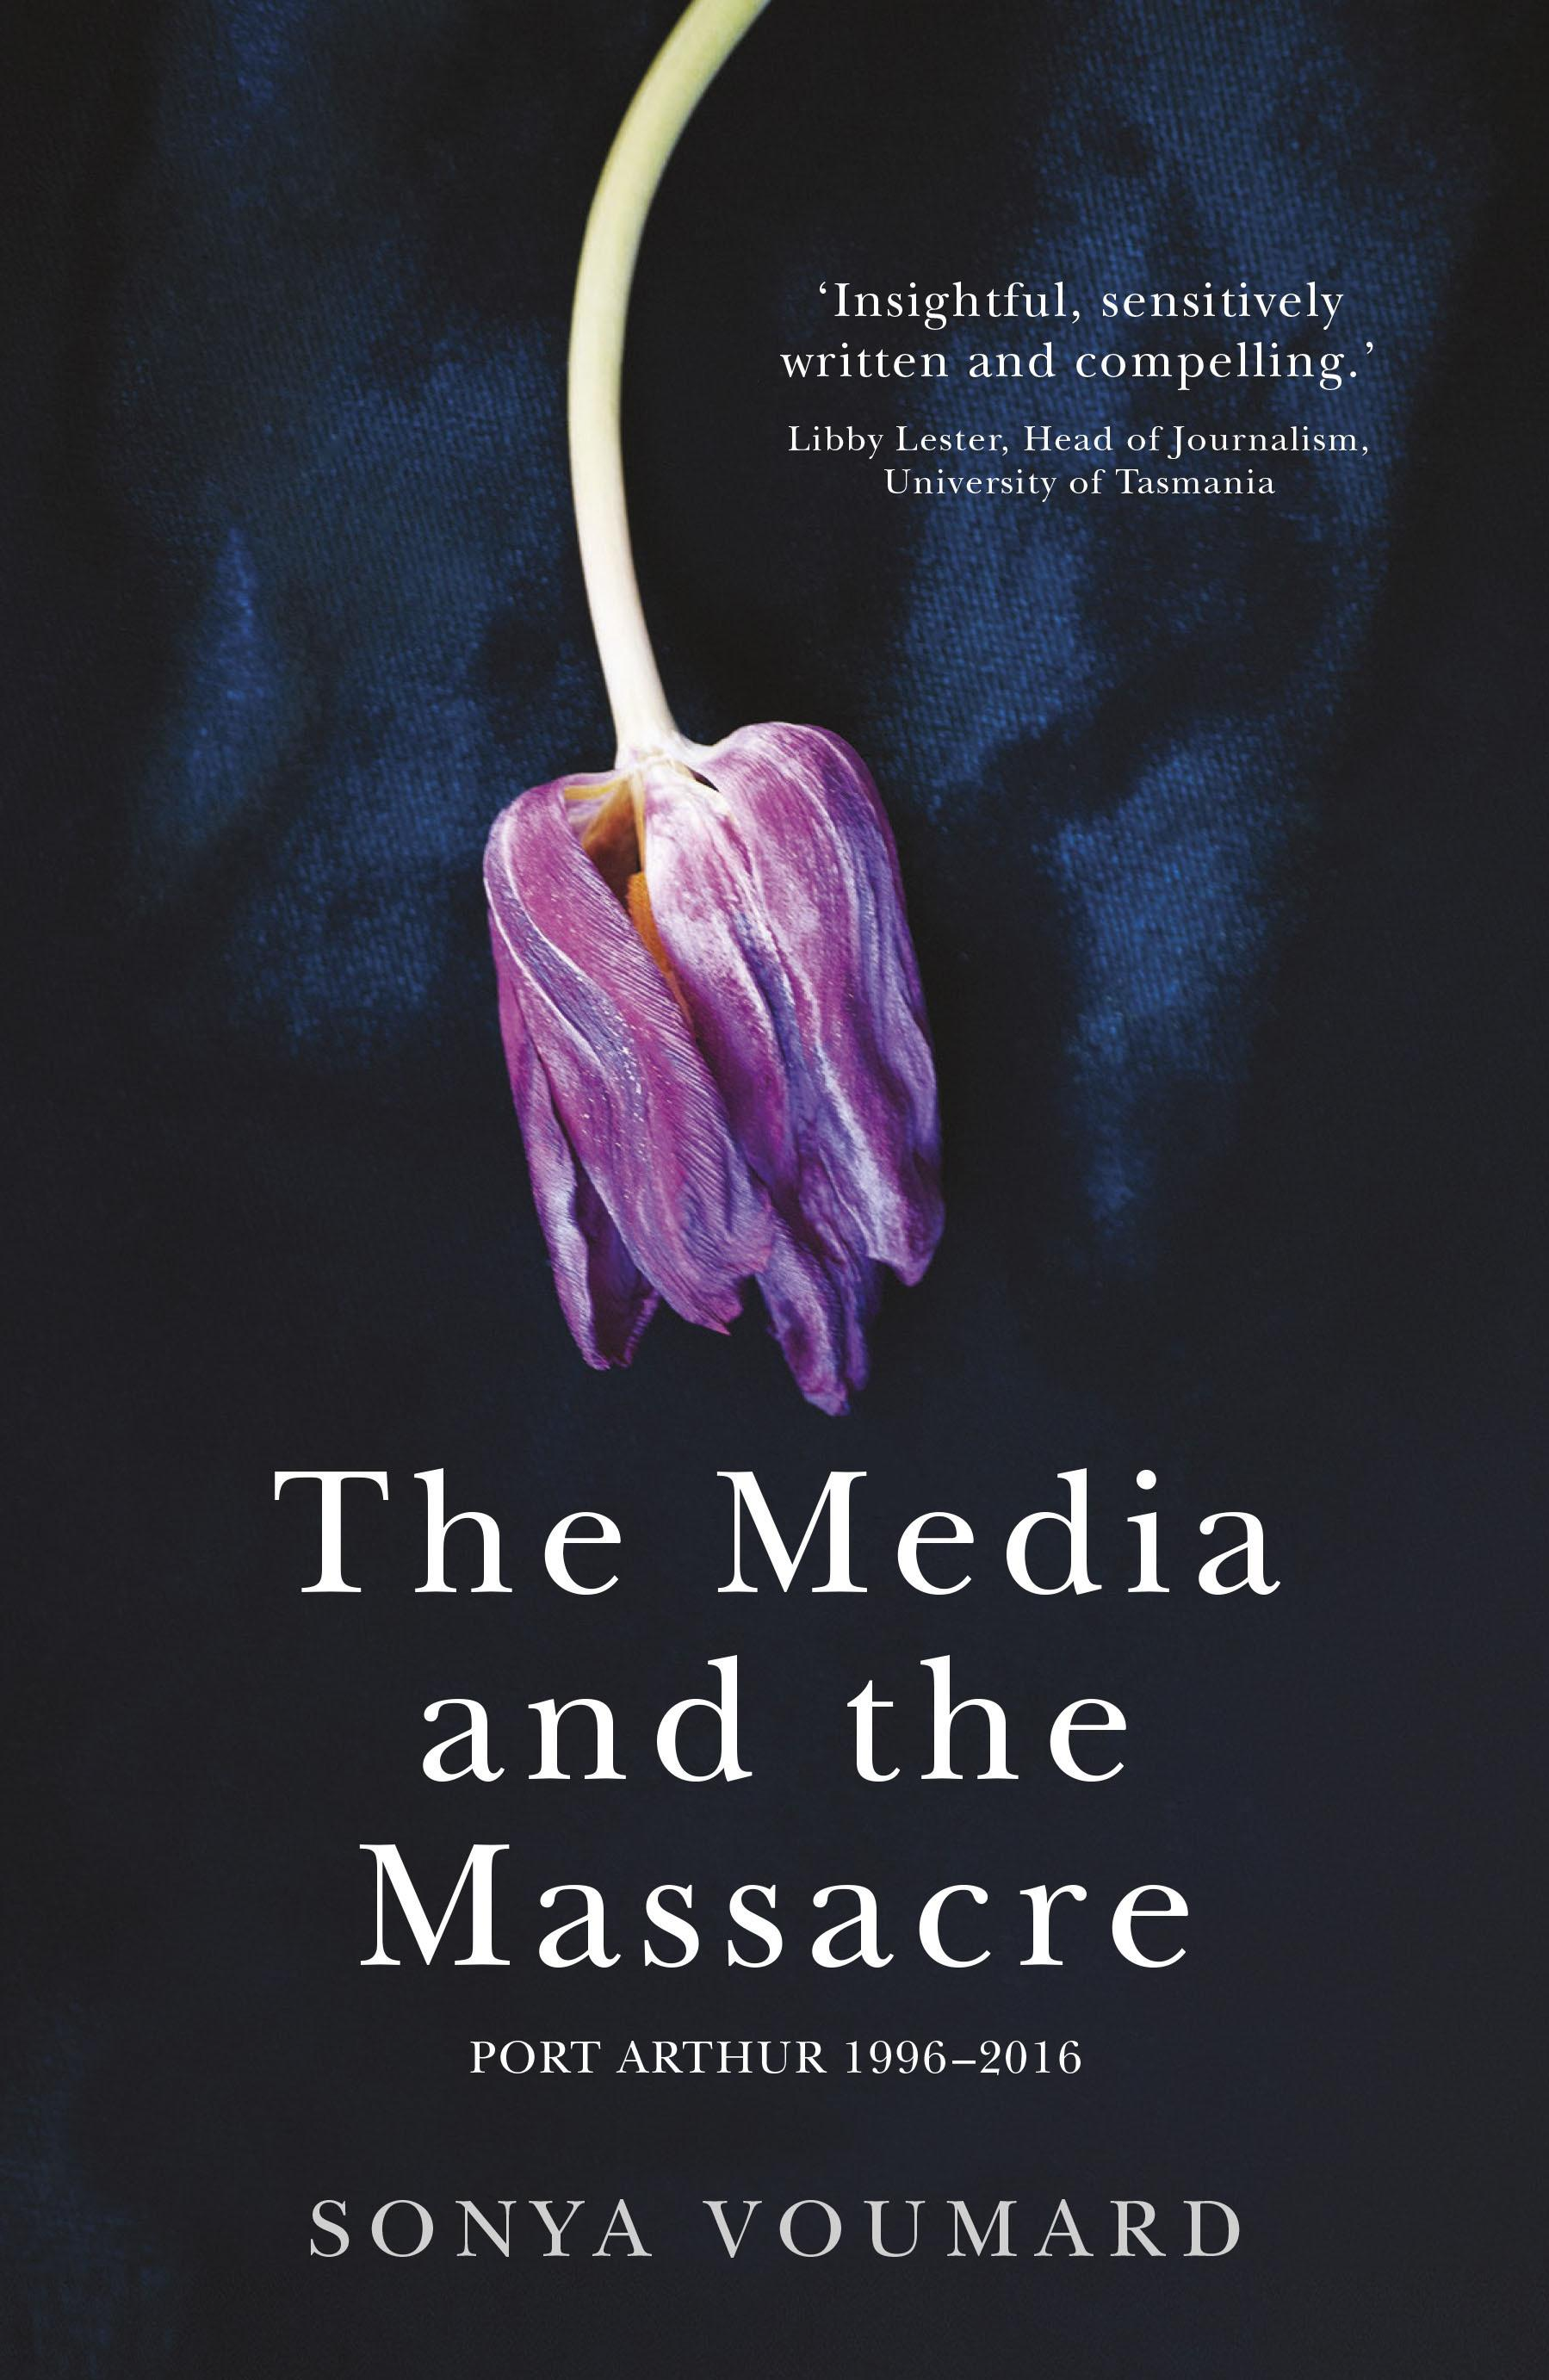 The Media and the Massacre: Port Arthur 1996-2016